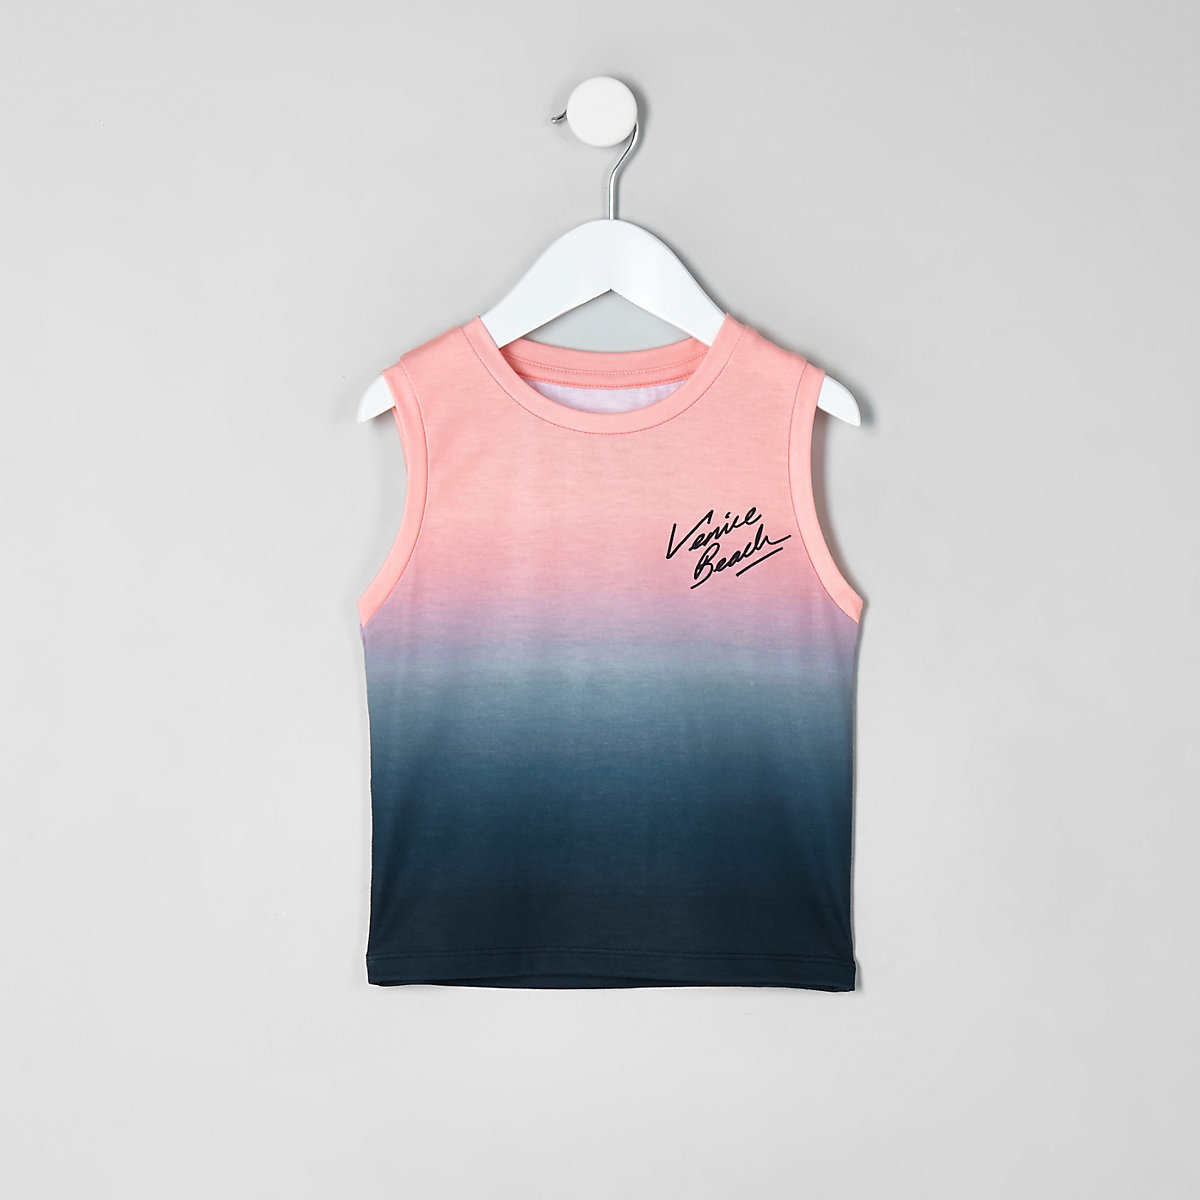 Mini boys fade 'venice beach' tank